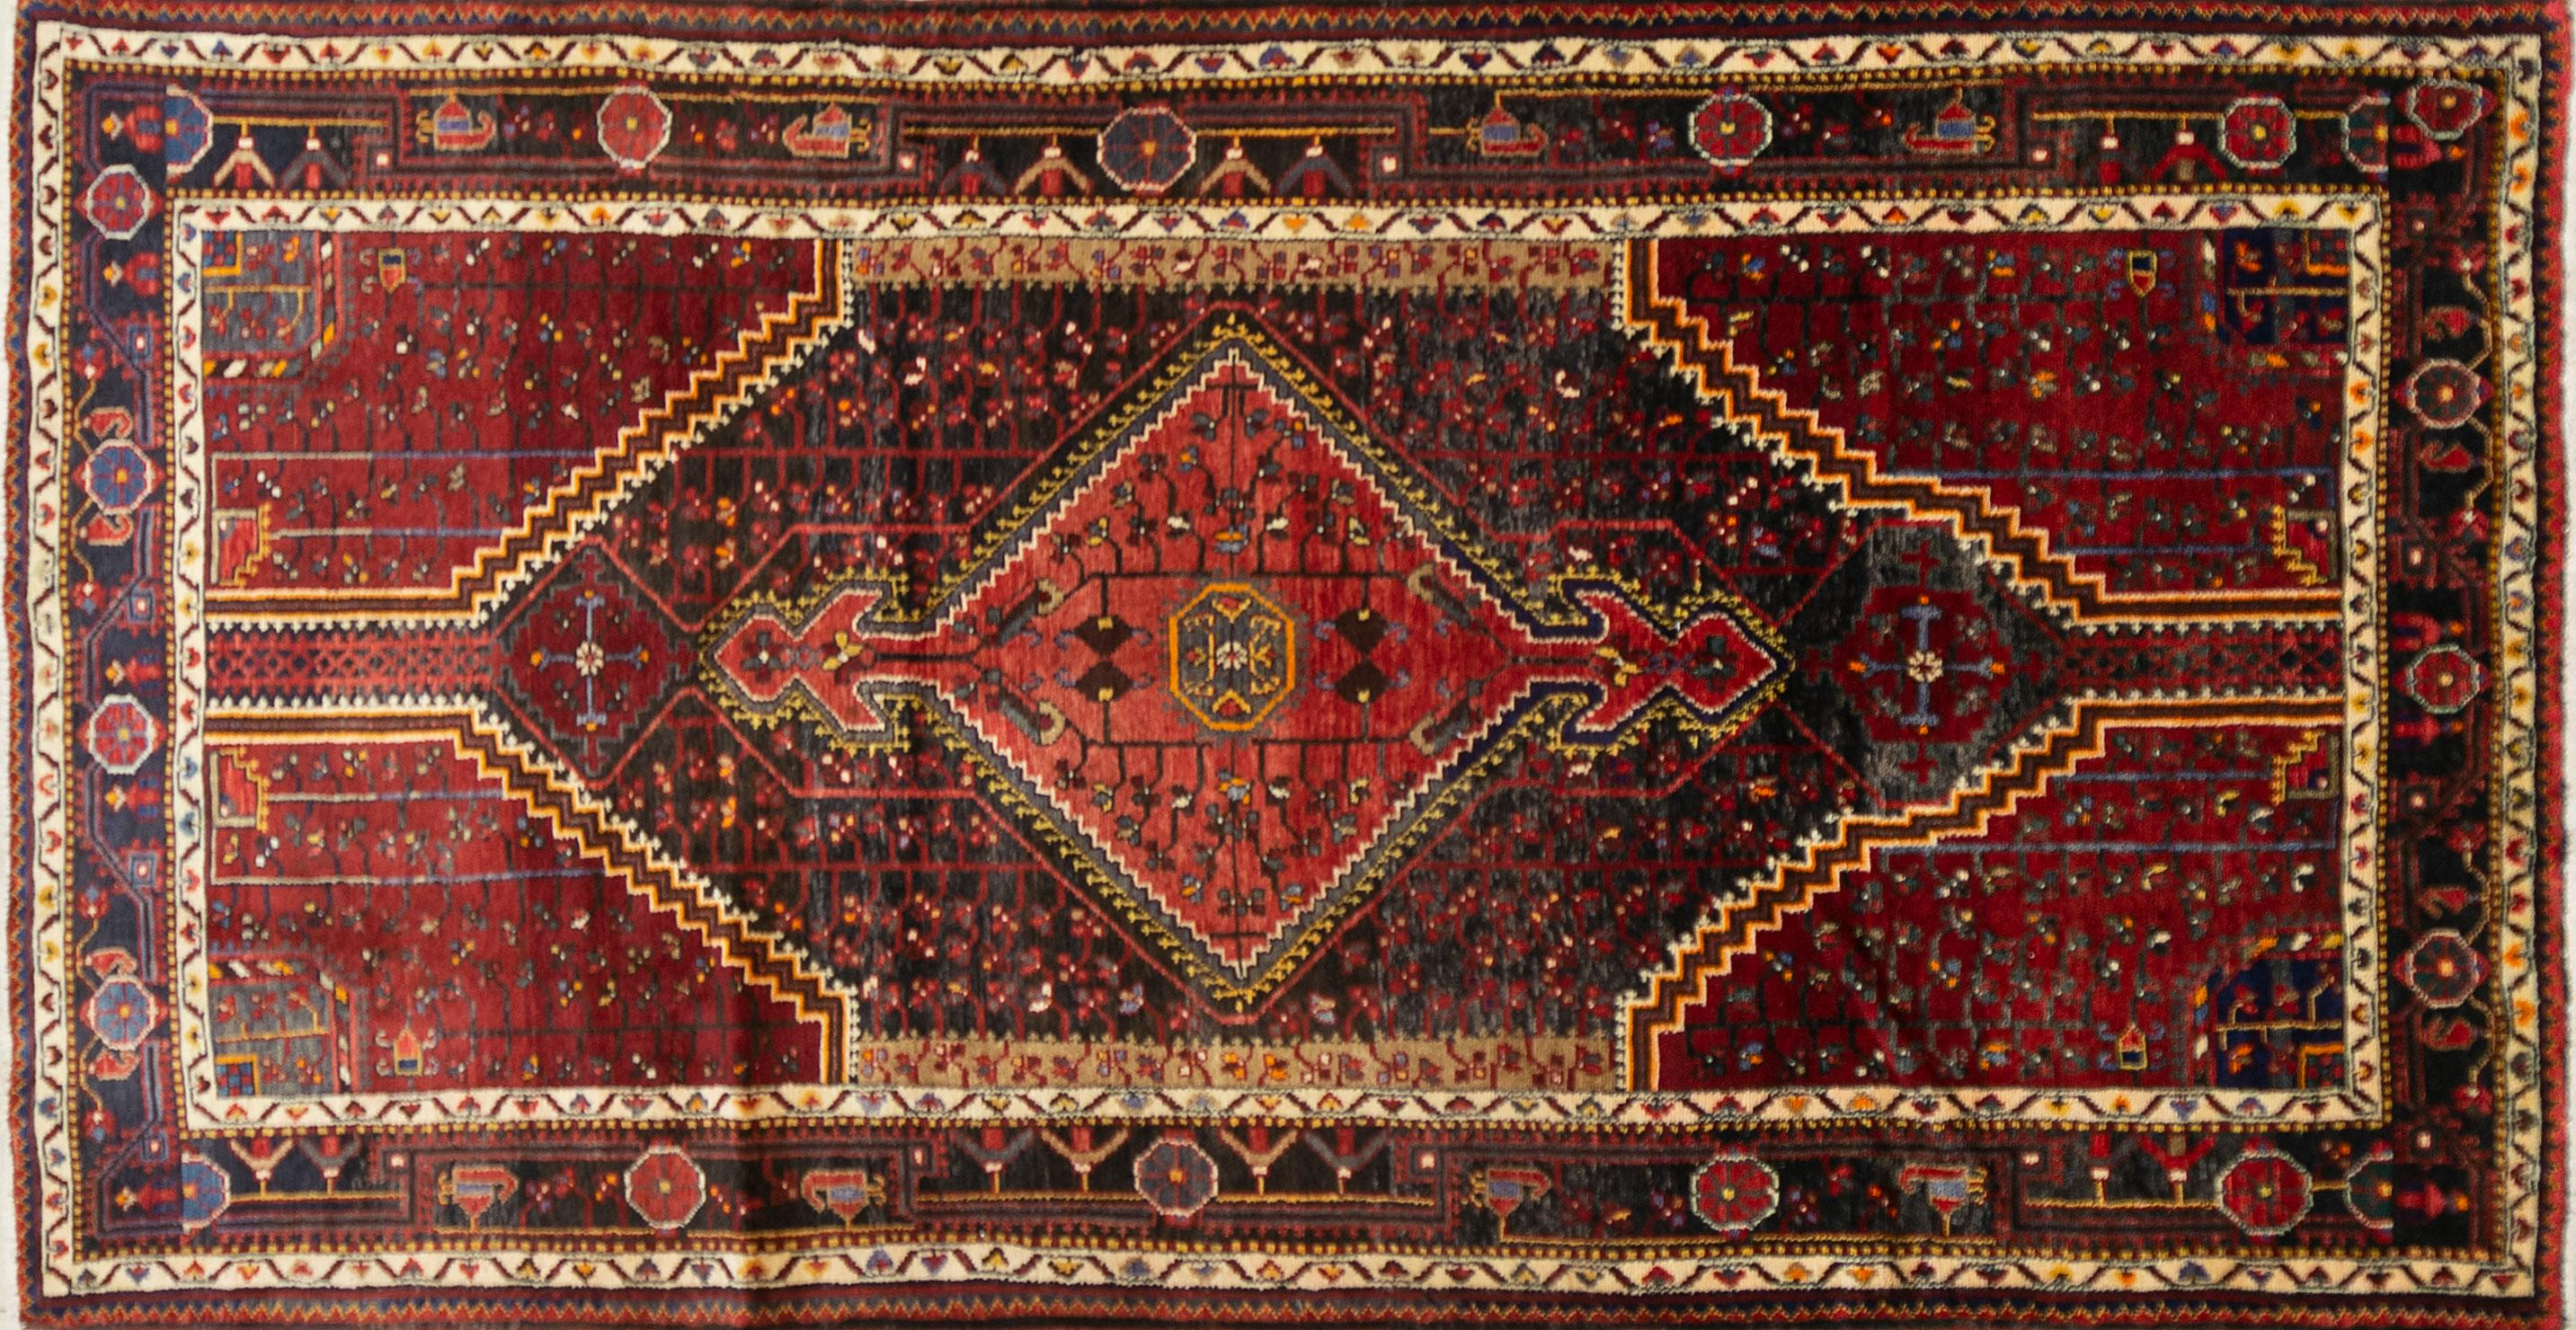 A Persian Hand Knotted Afshar Rug, 275 x 141